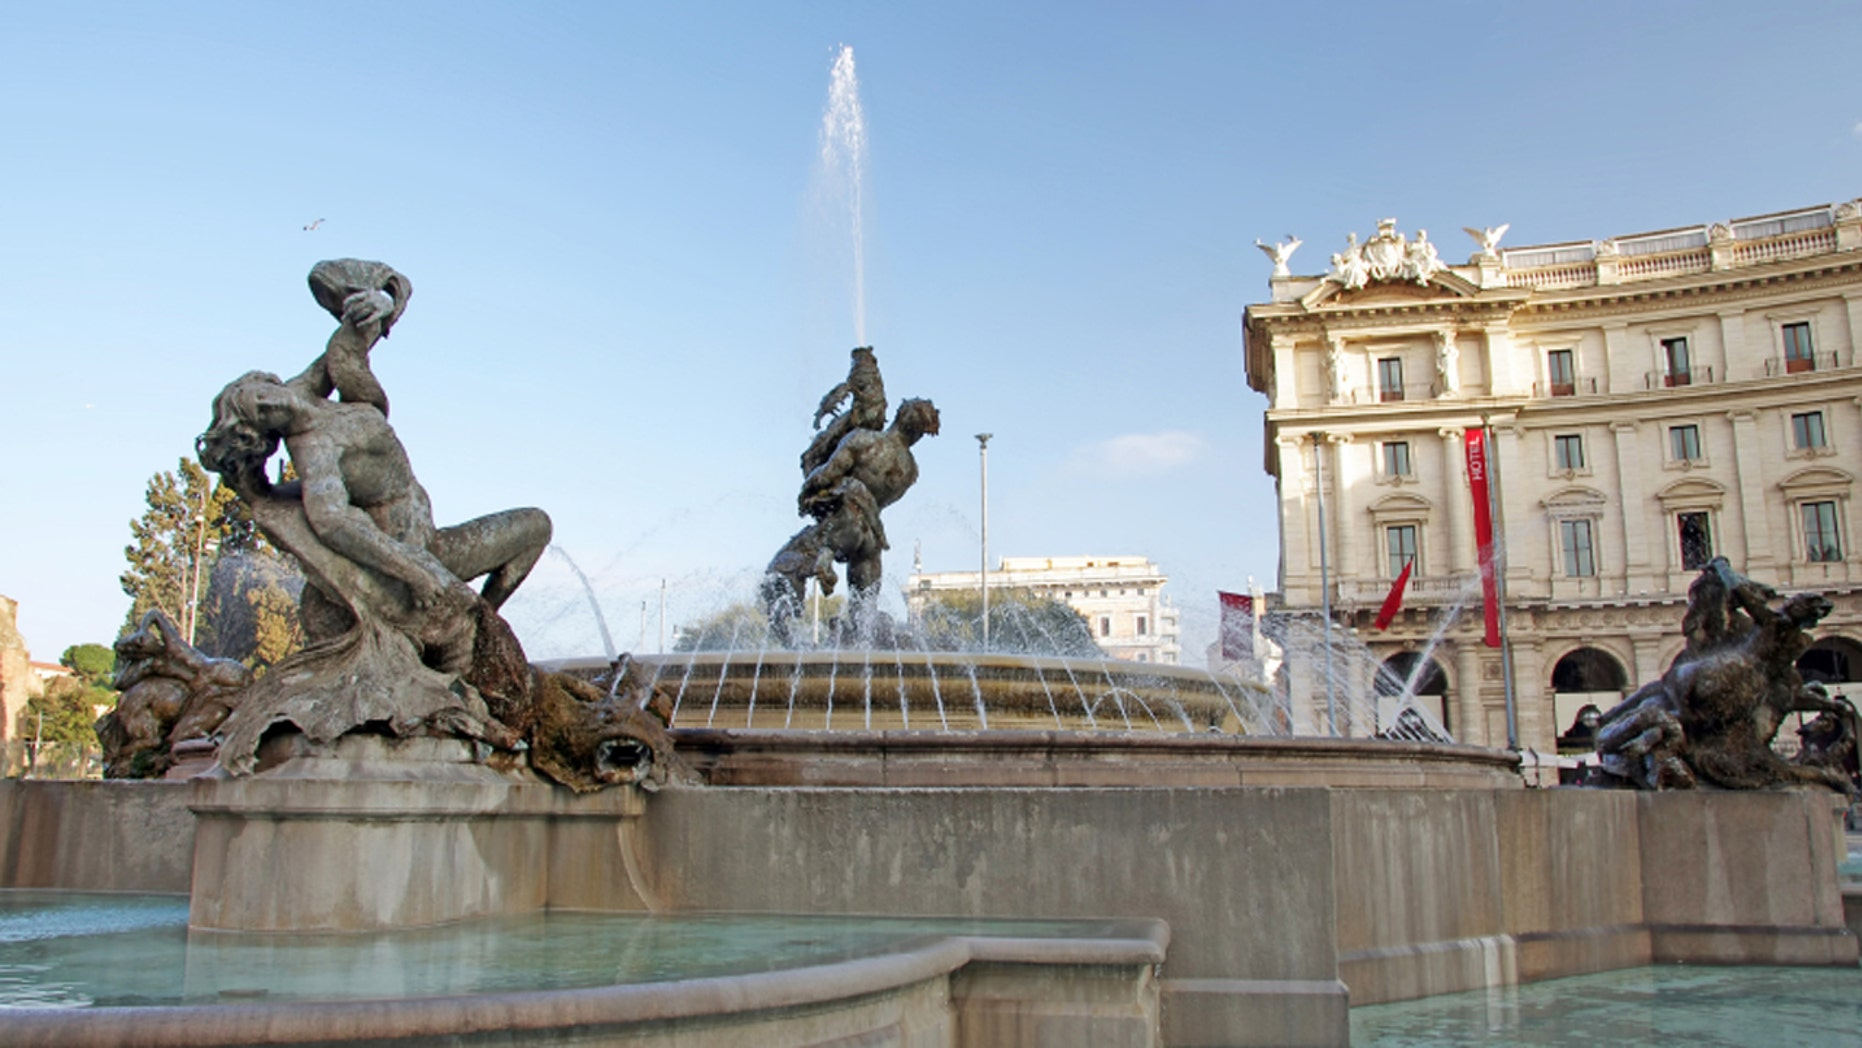 The Fountain of the Naiads in the Piazza della Repubblica in Rome is one of the city's most famous landmarks.